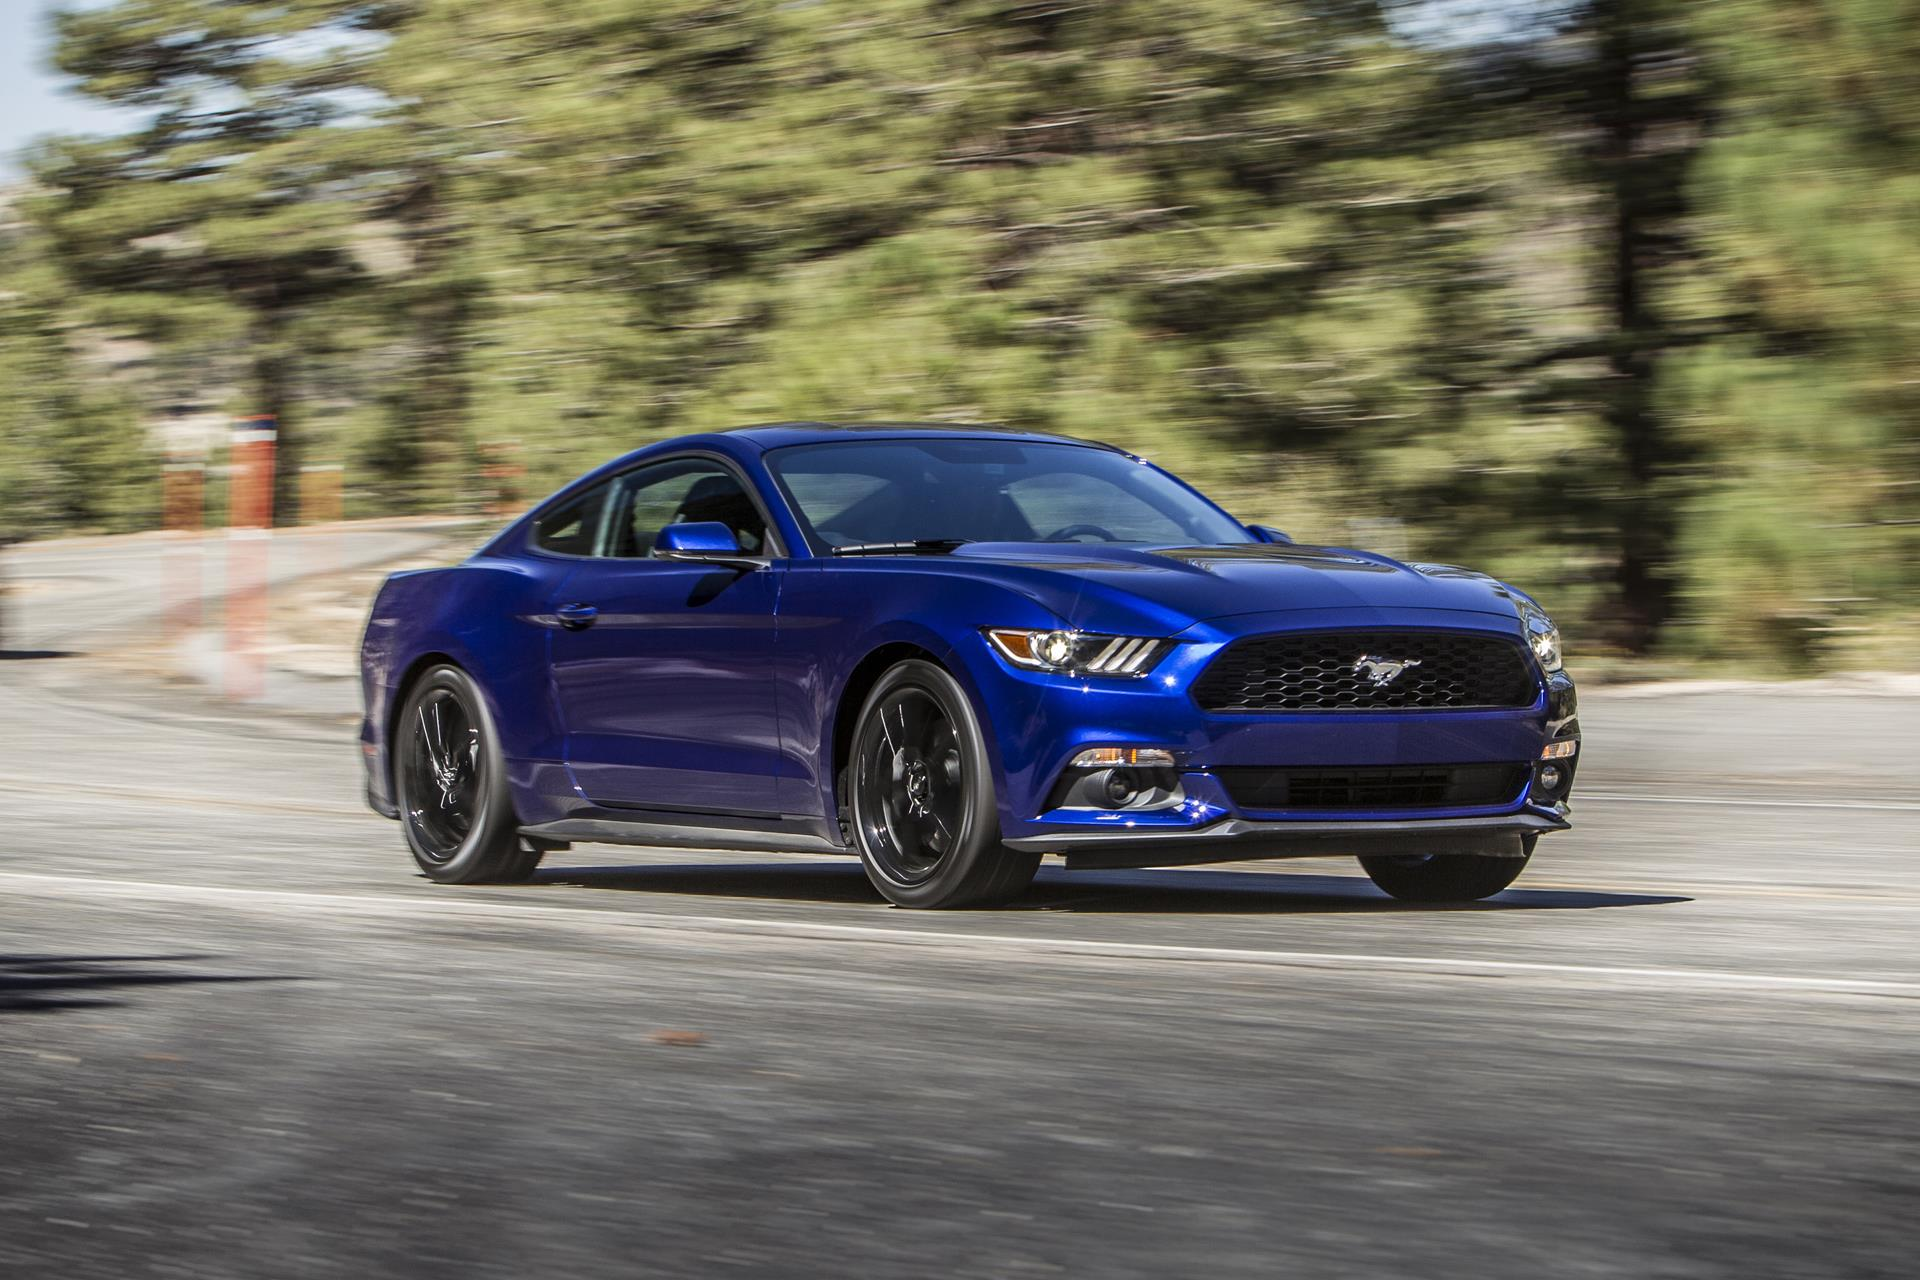 2015 ford mustang conceptcarzcom - 2015 Ford Mustang V6 Blue